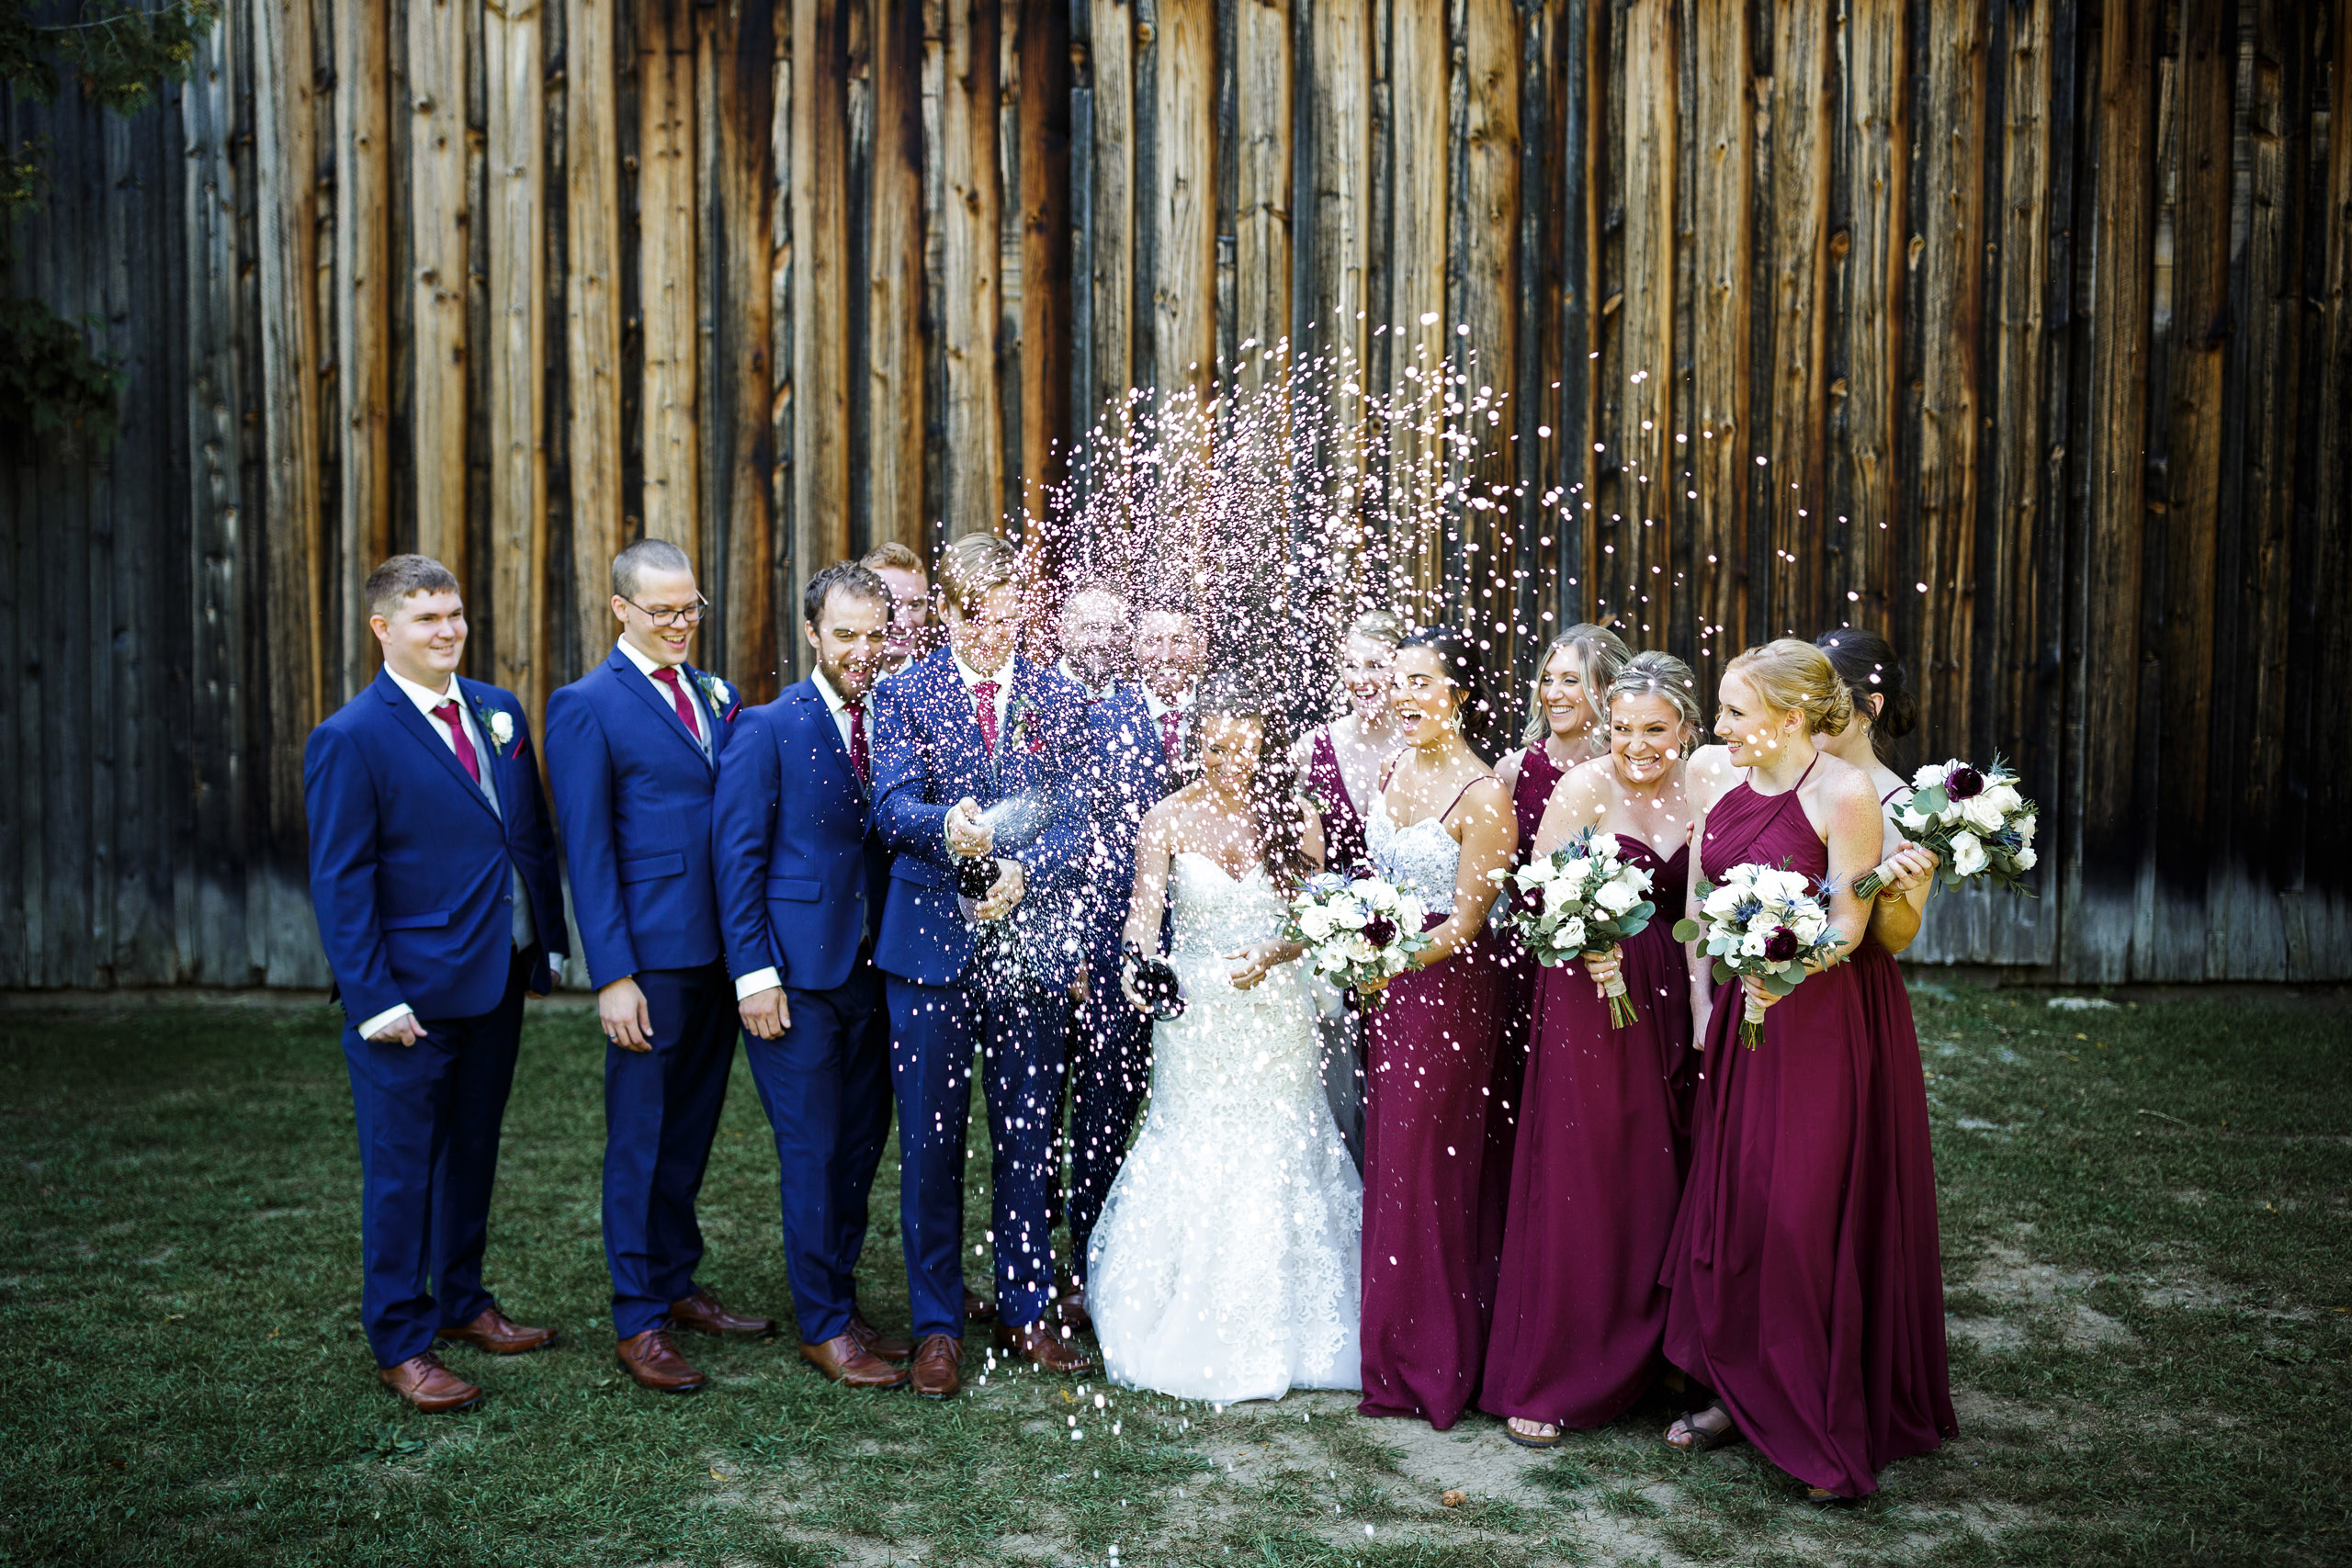 outdoor wedding ceremony barn balls falls niagara wedding photographer brooker events